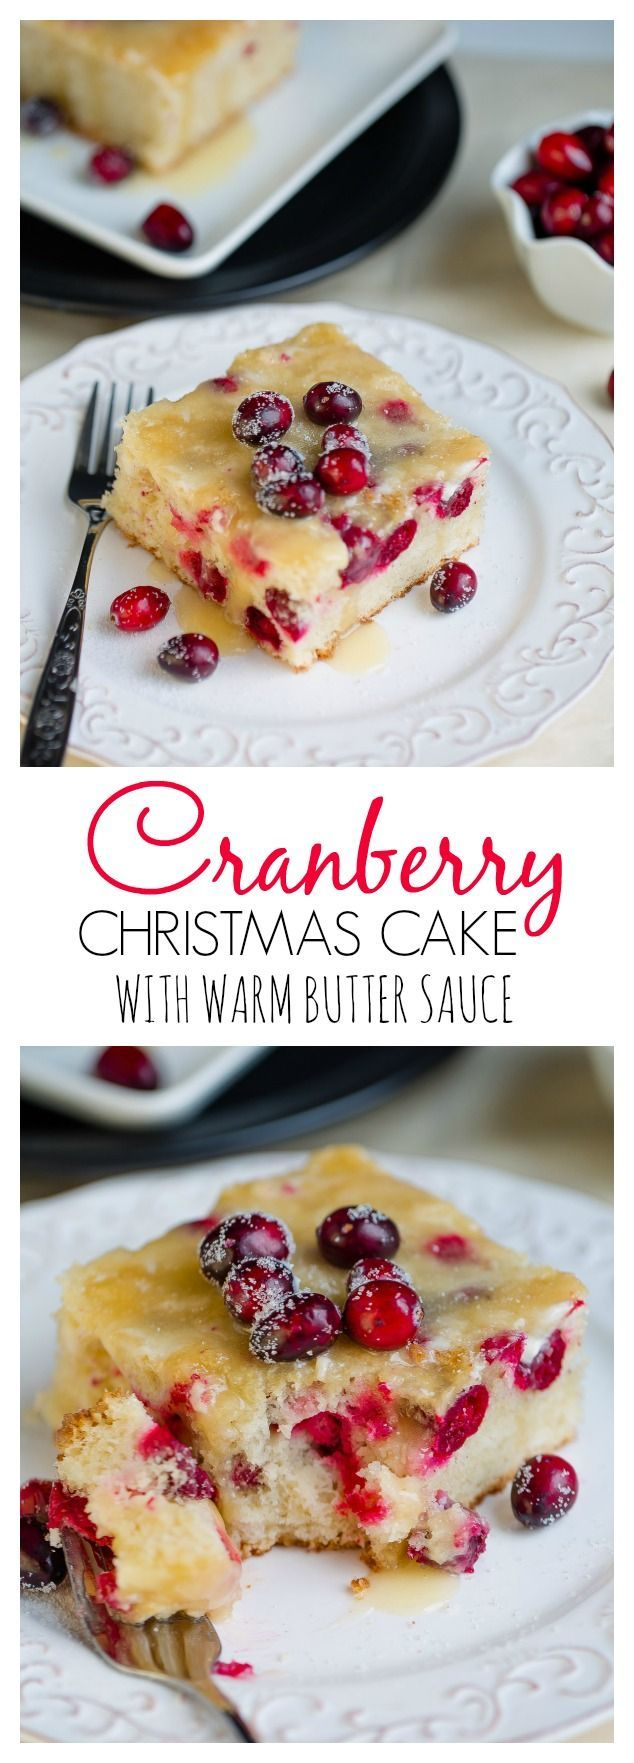 Cranberry Christmas Cake with Butter Sauce makes a special dessert for the holidays!